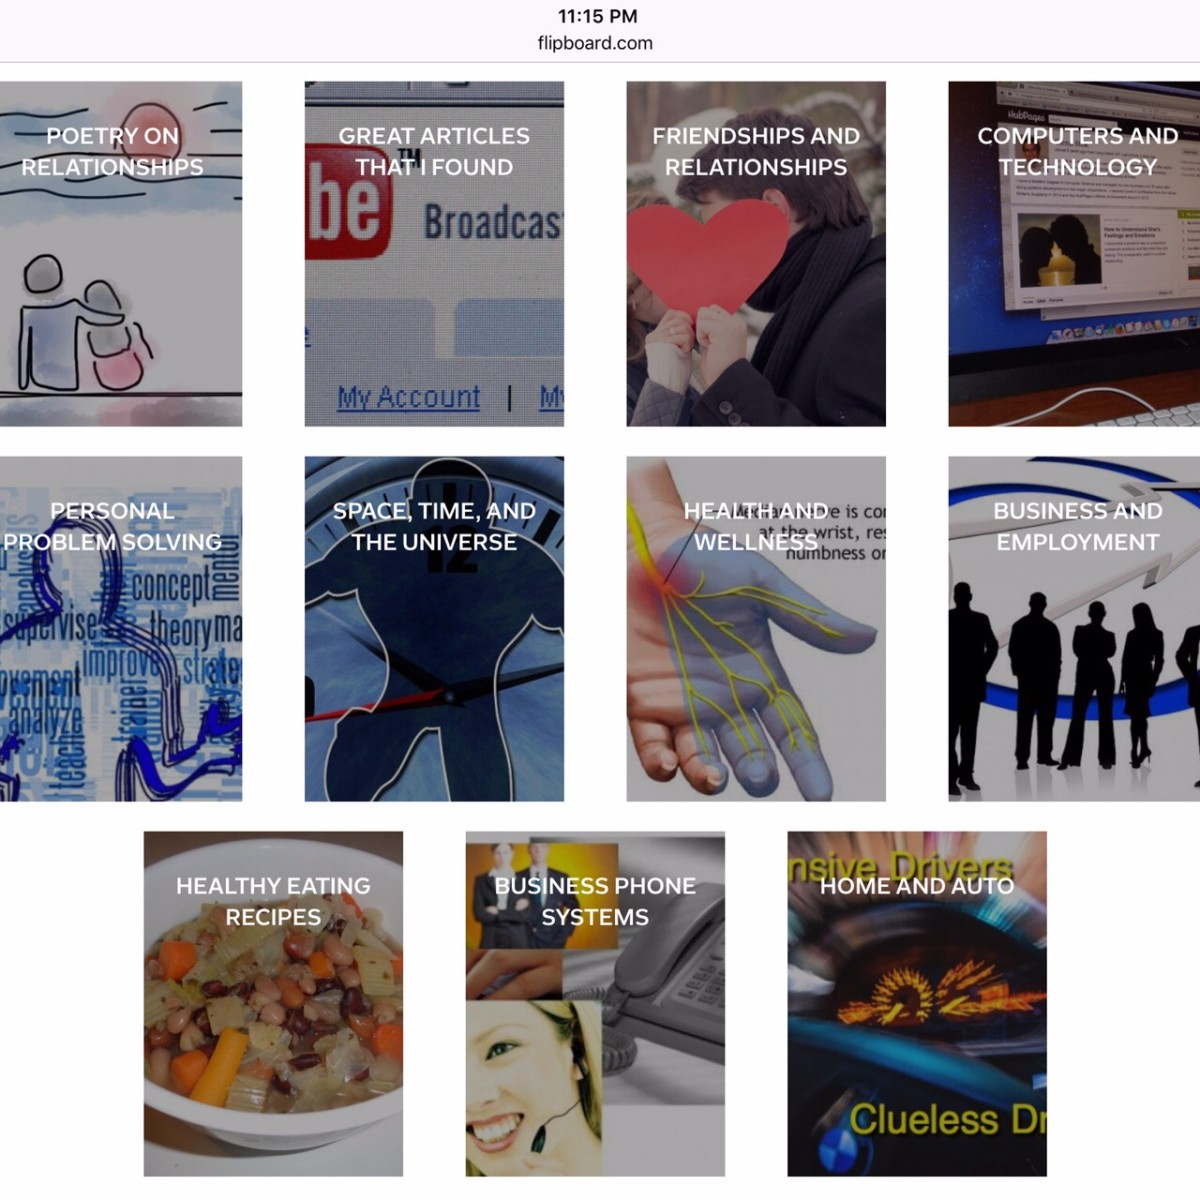 Get More Views: How to Promote and Share Articles on Flipboard